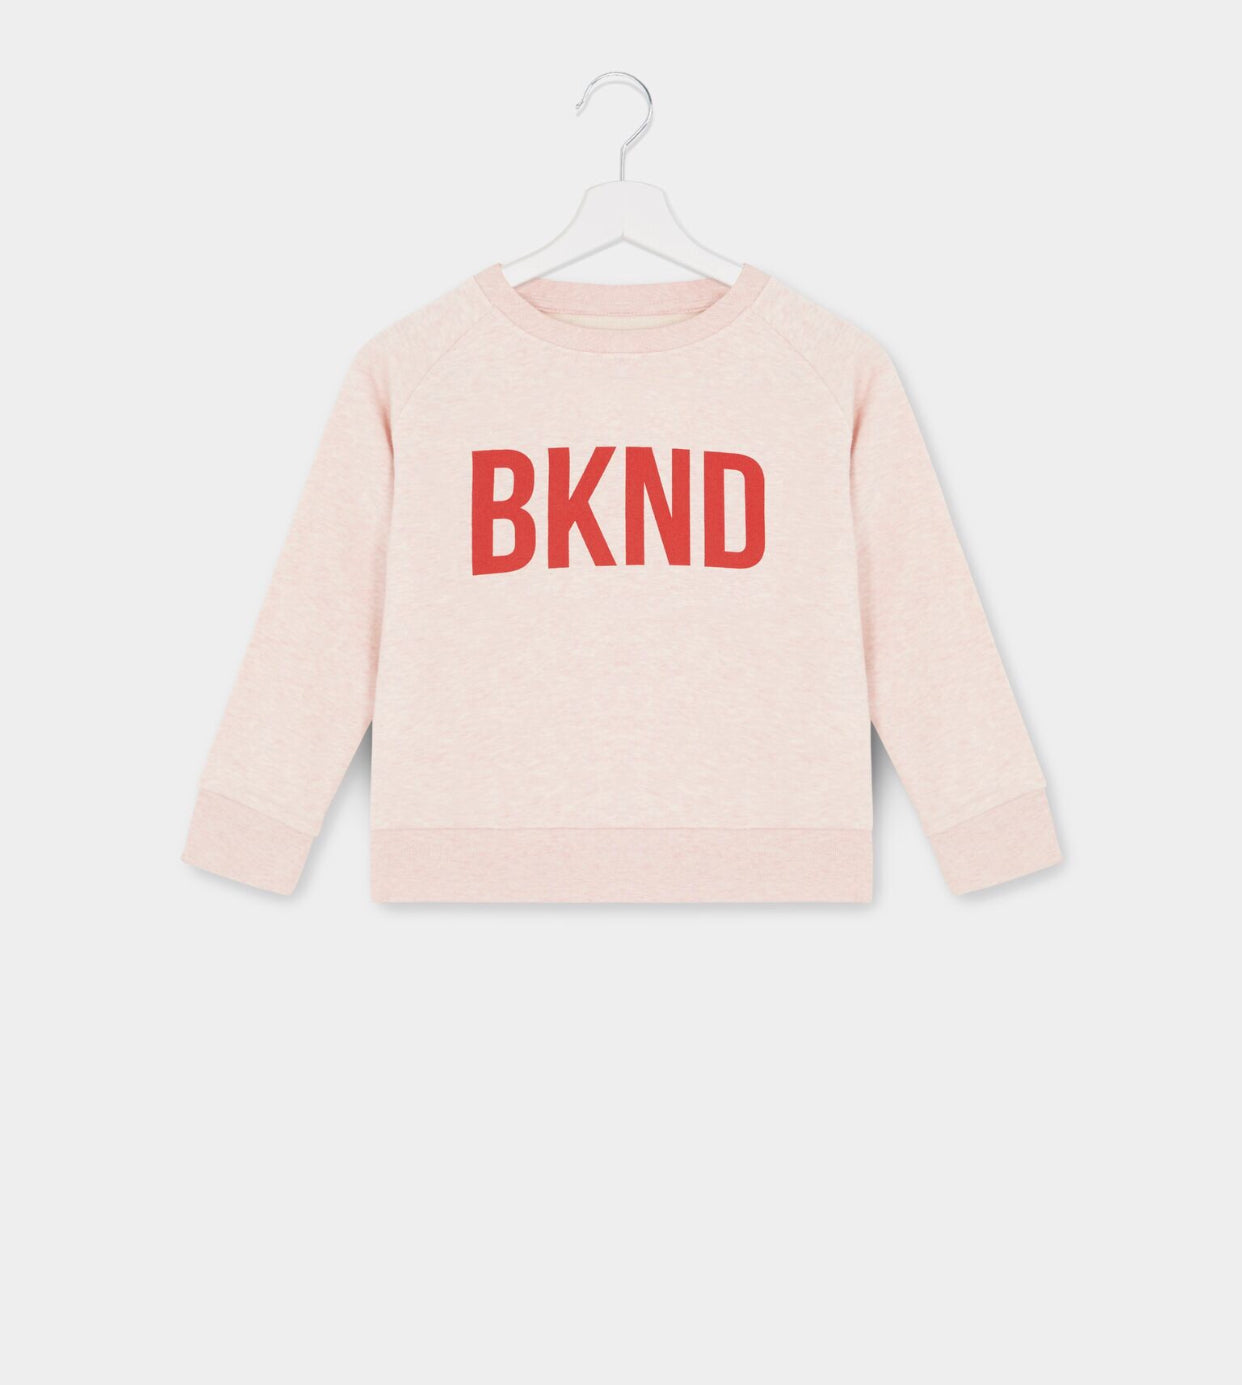 Kids Pink & Red BKND™ Sweatshirt for Anti Bullying Pro